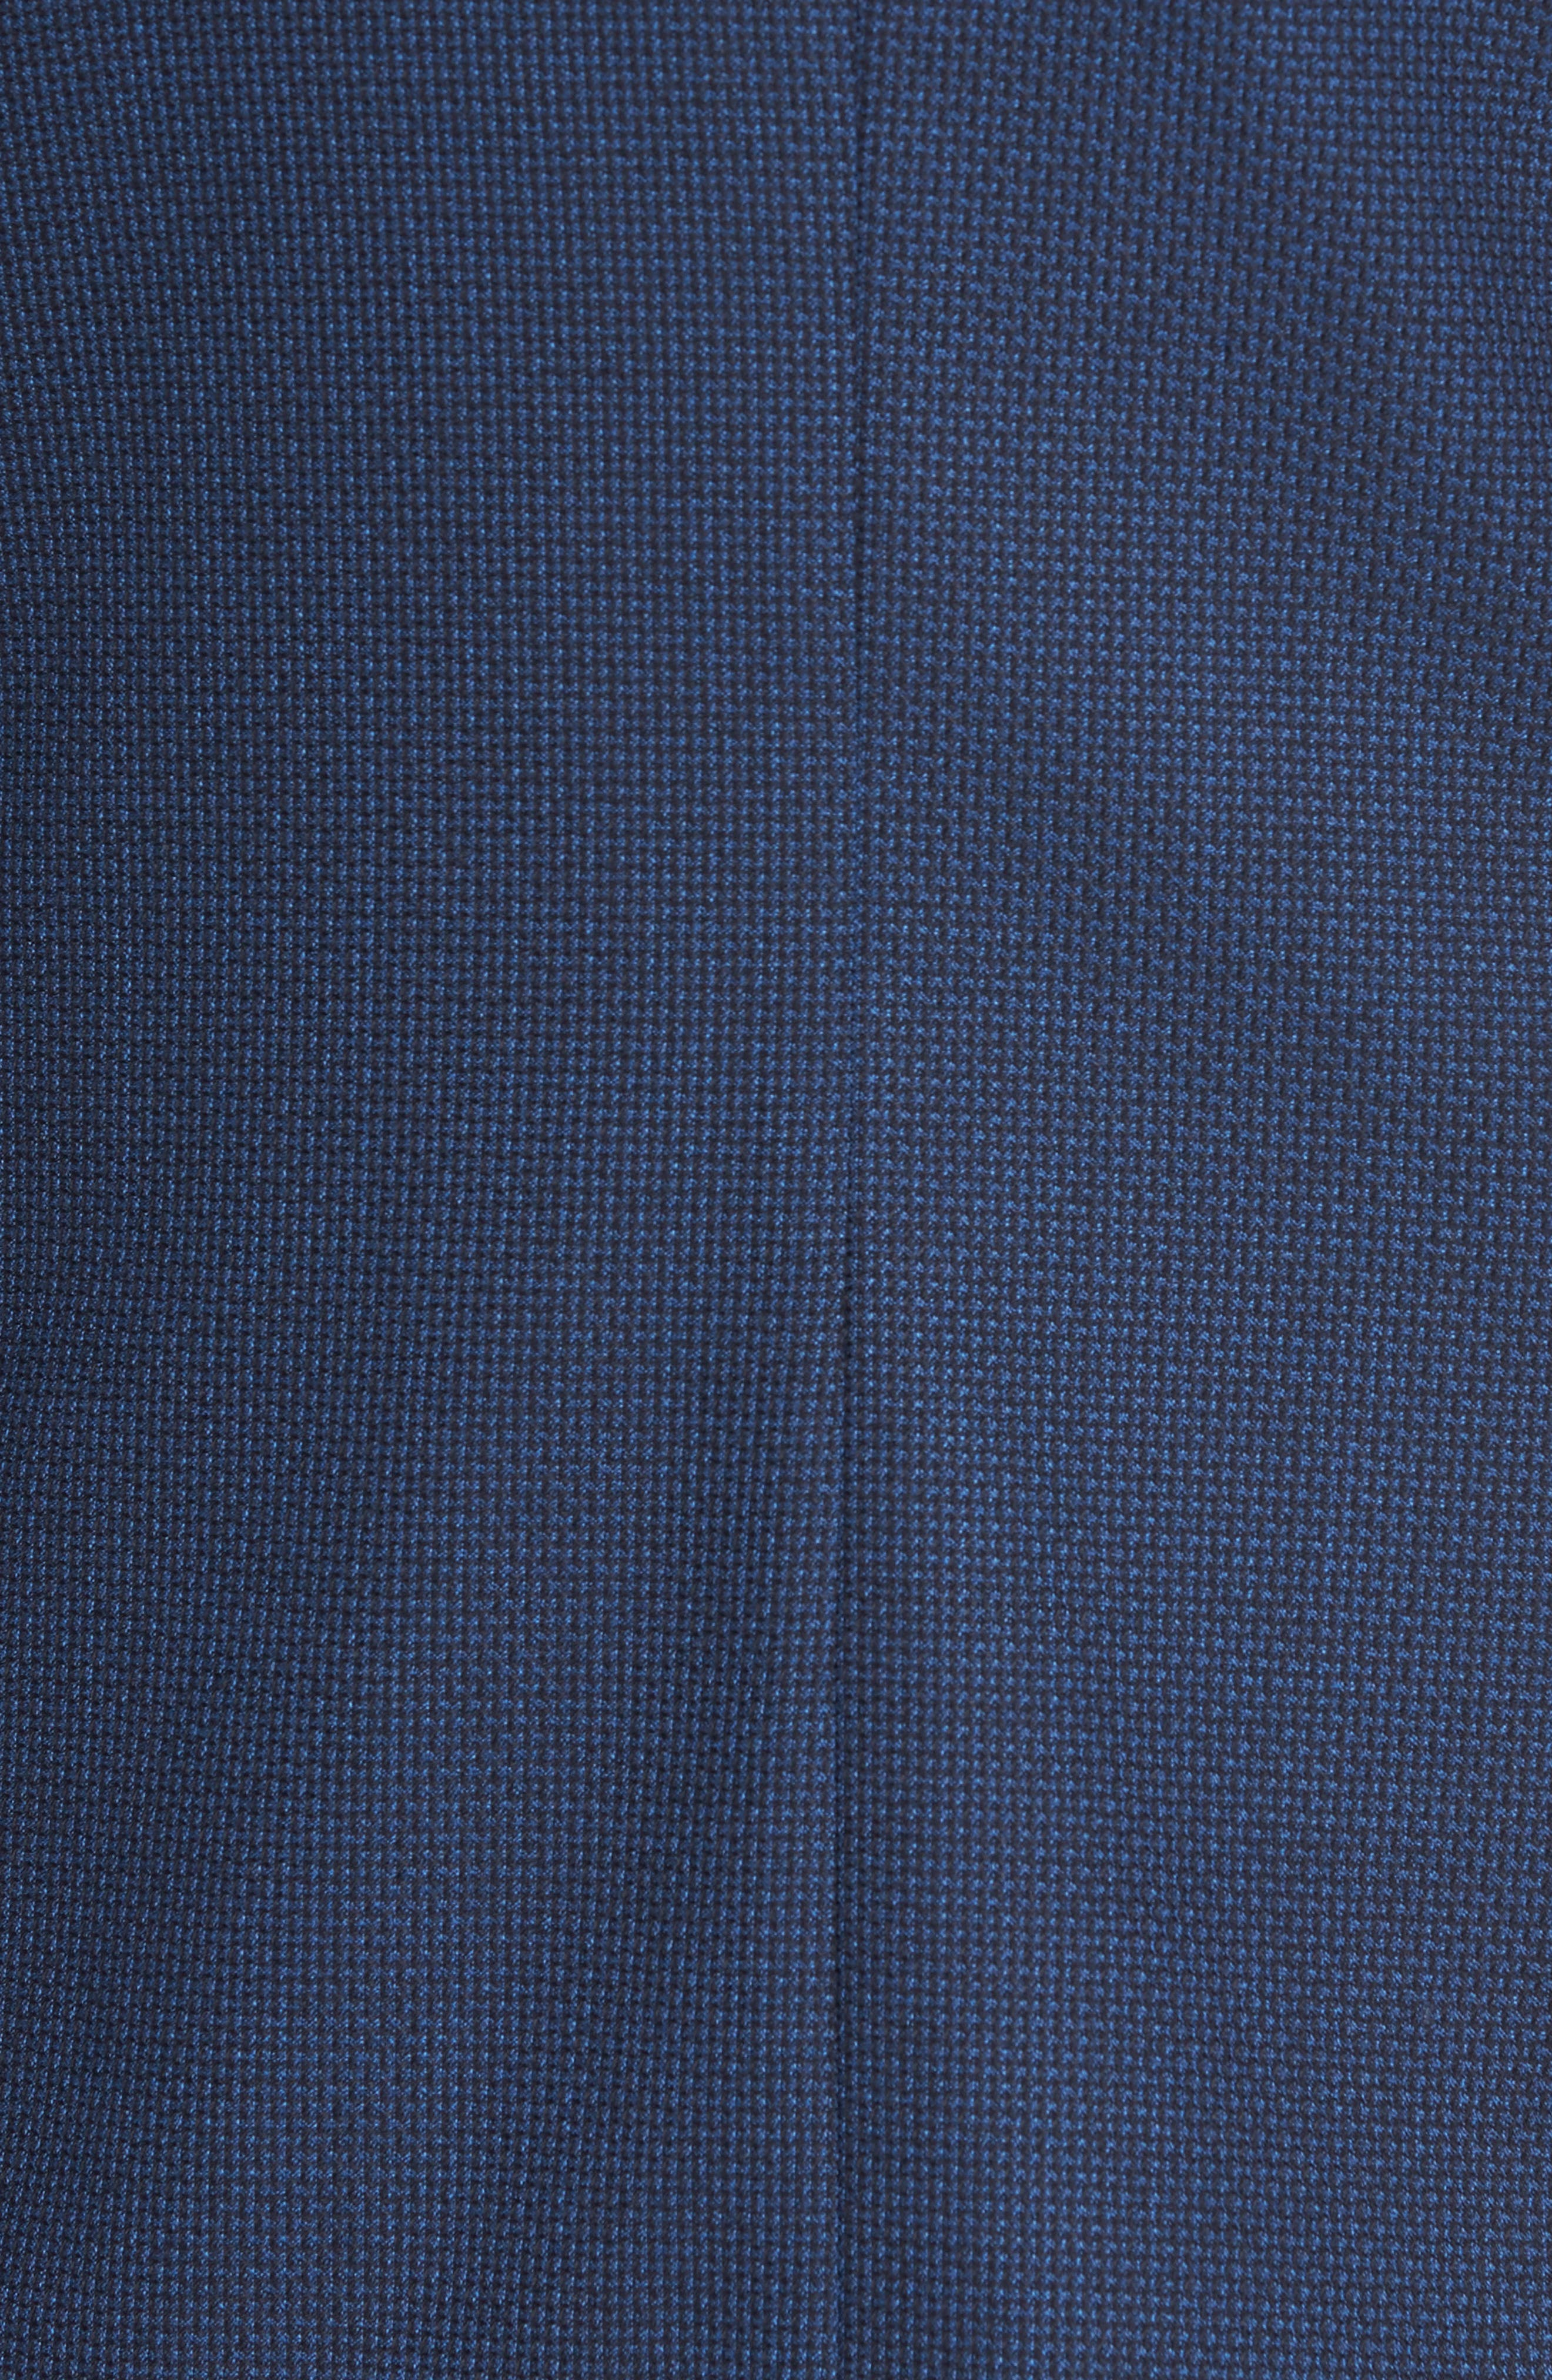 Nold Trim Fit Wool Blazer,                             Alternate thumbnail 6, color,                             BLUE